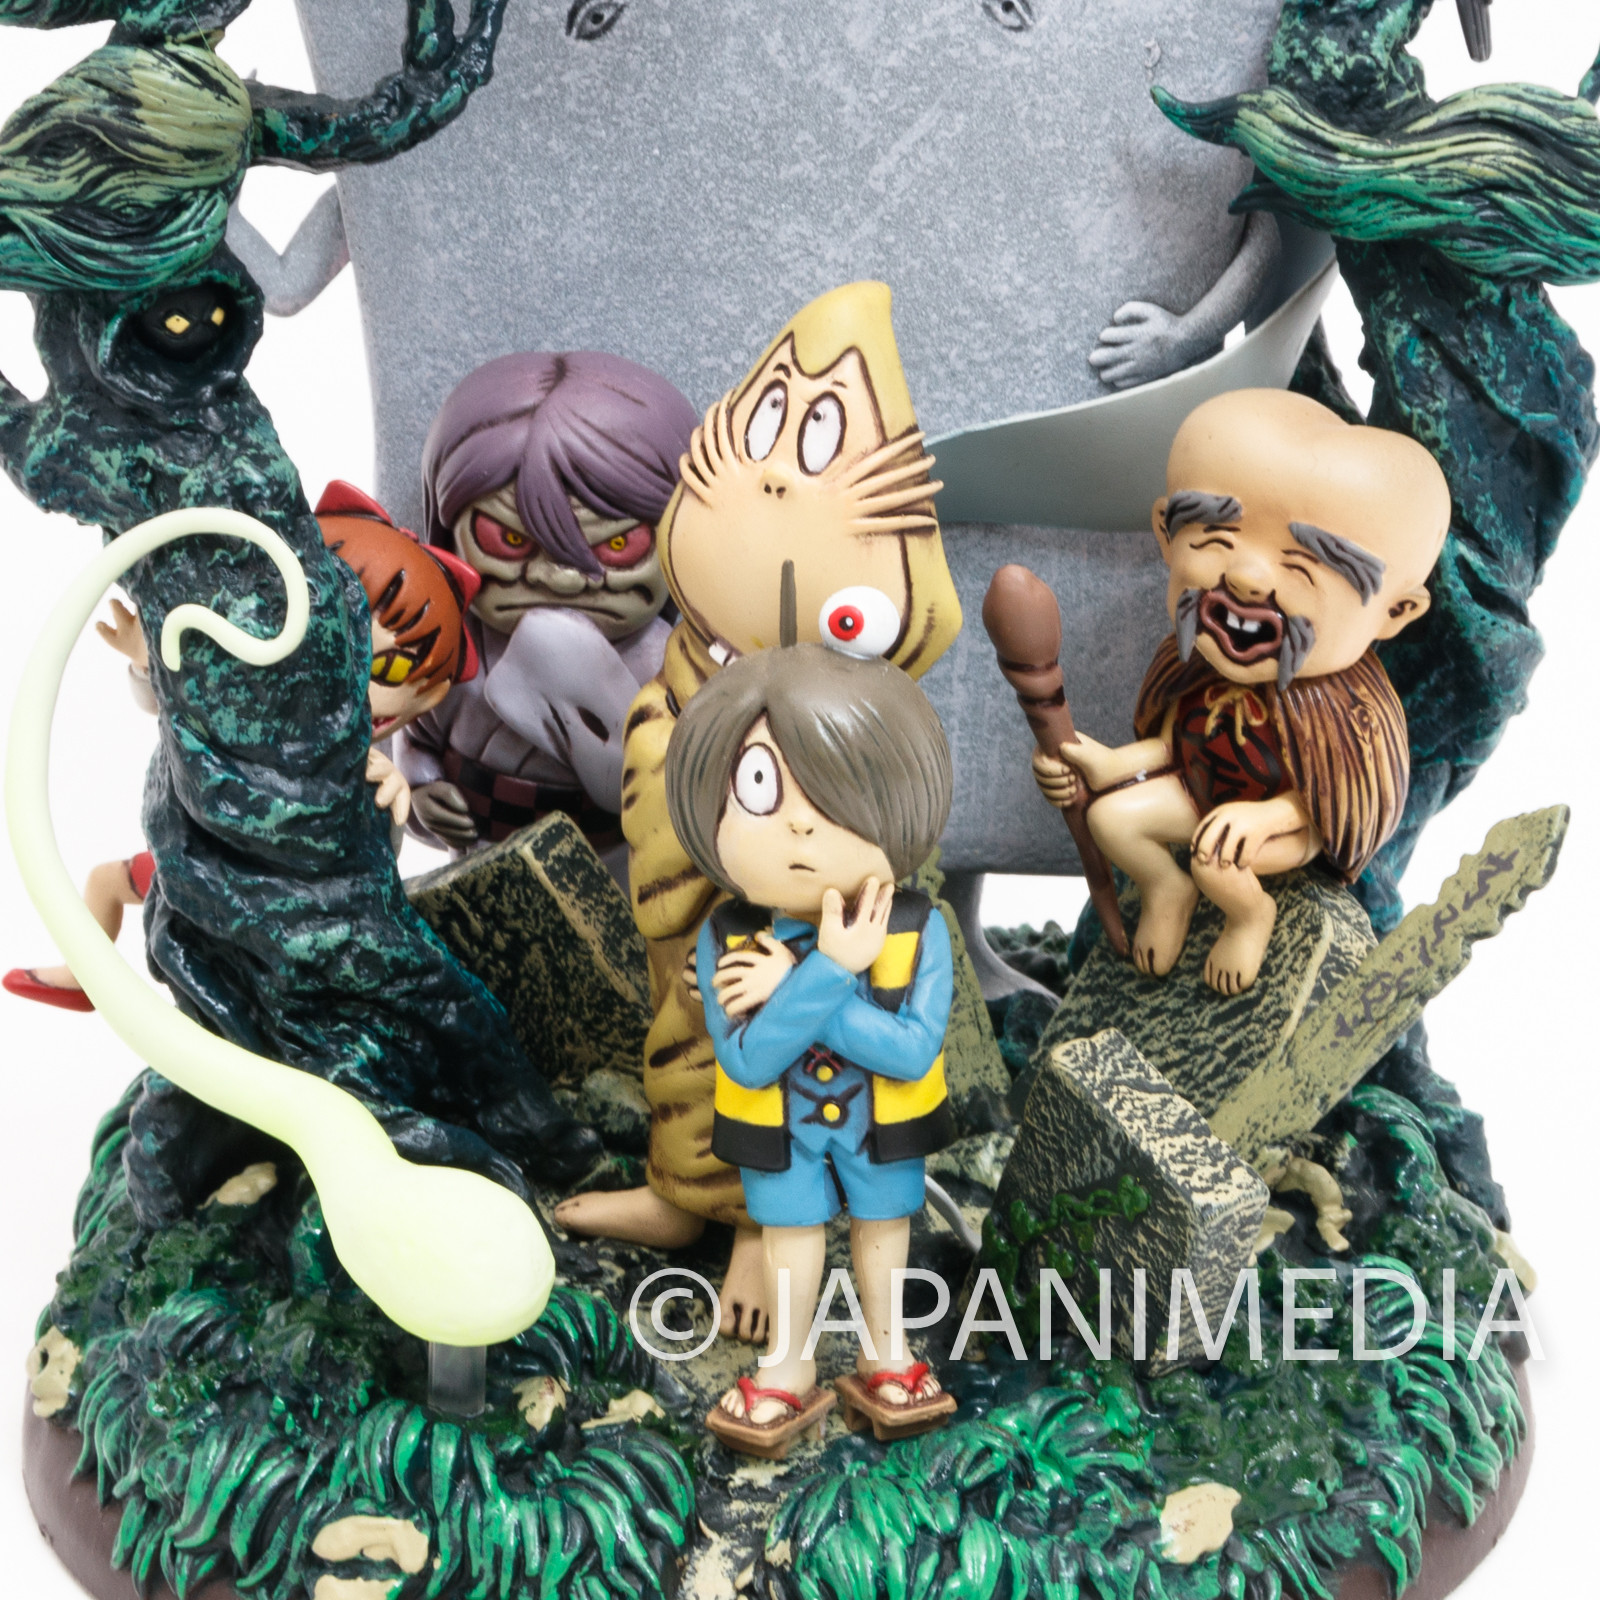 Gegege no Kitaro Yokai Family Diorama Figure JAPAN ANIME MANGA